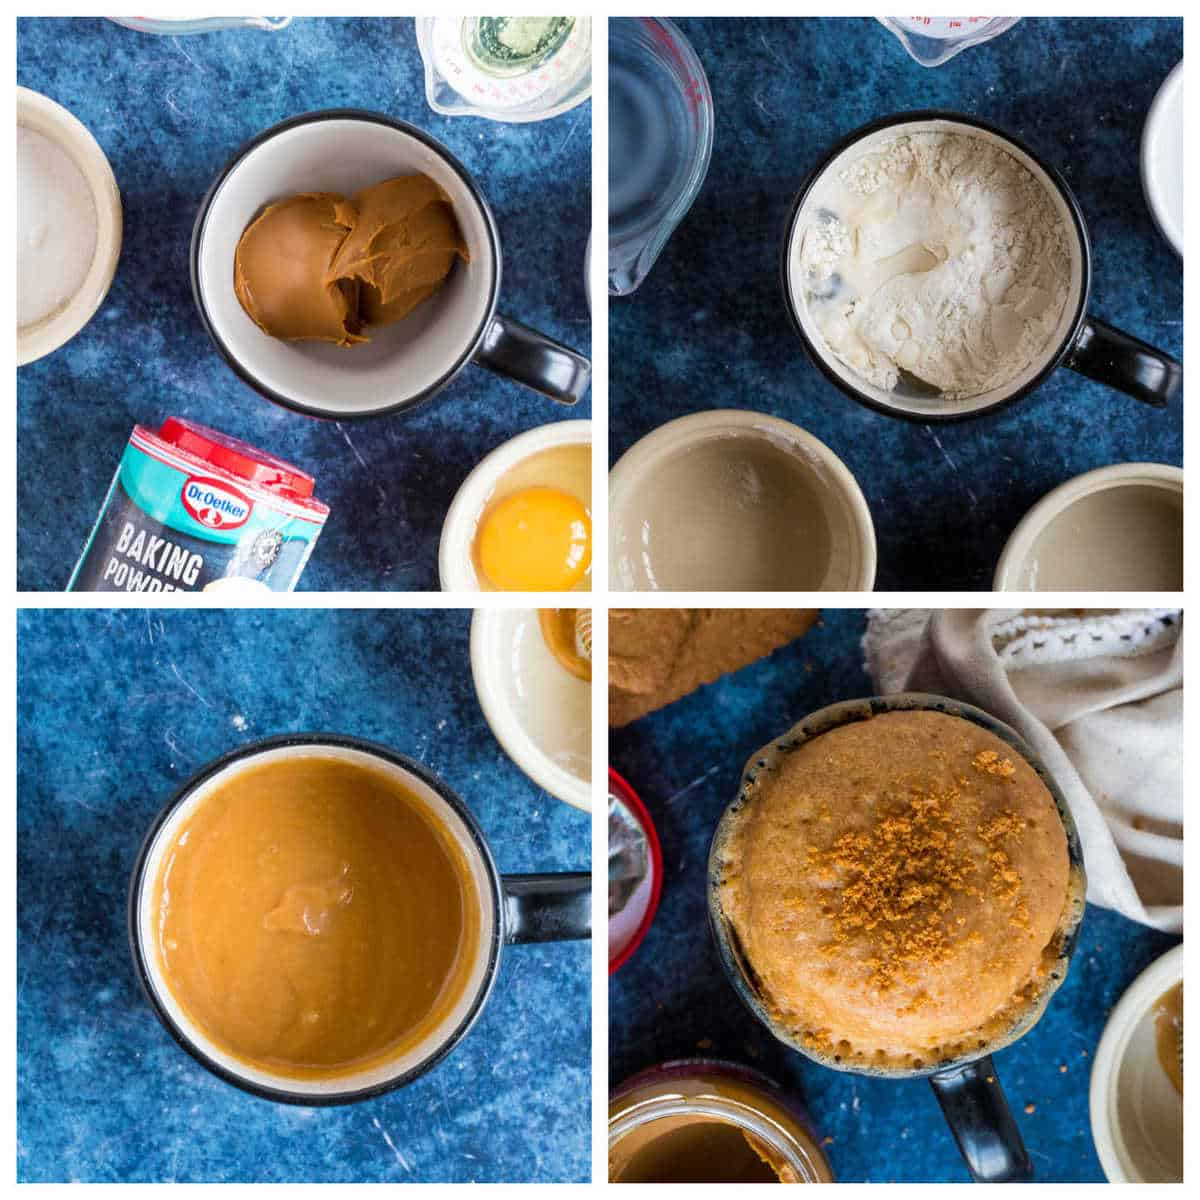 Step by step photo instructions for making the mug cake.